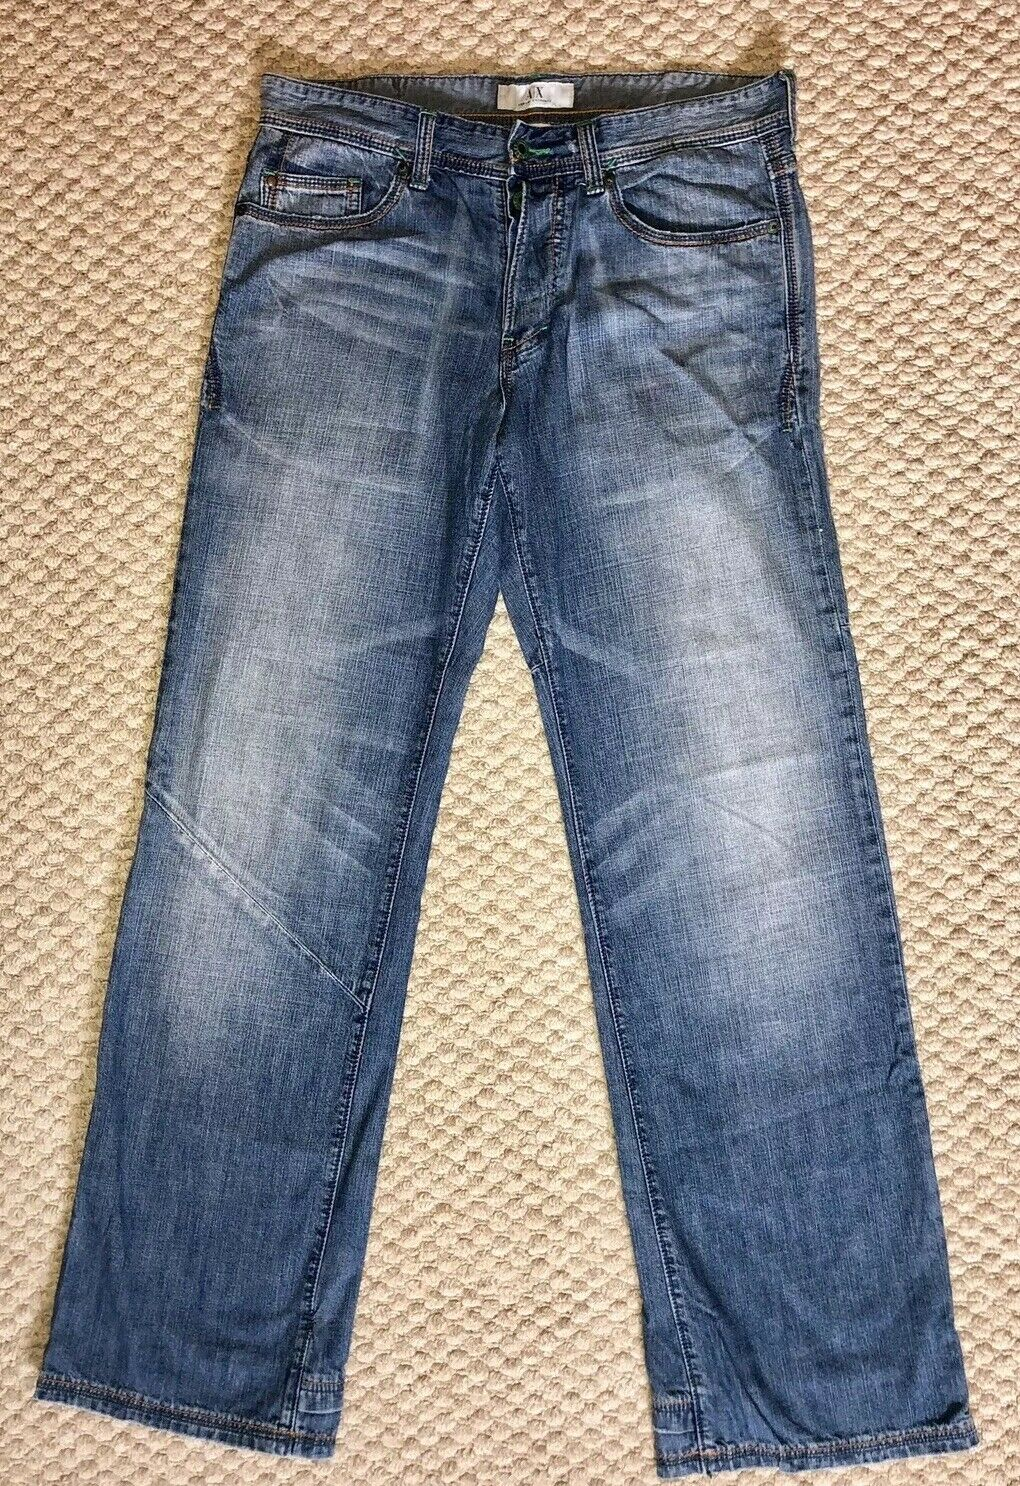 Armani Exchange 34 X 33 Men's Designer Button Fly Jeans Used MSRP